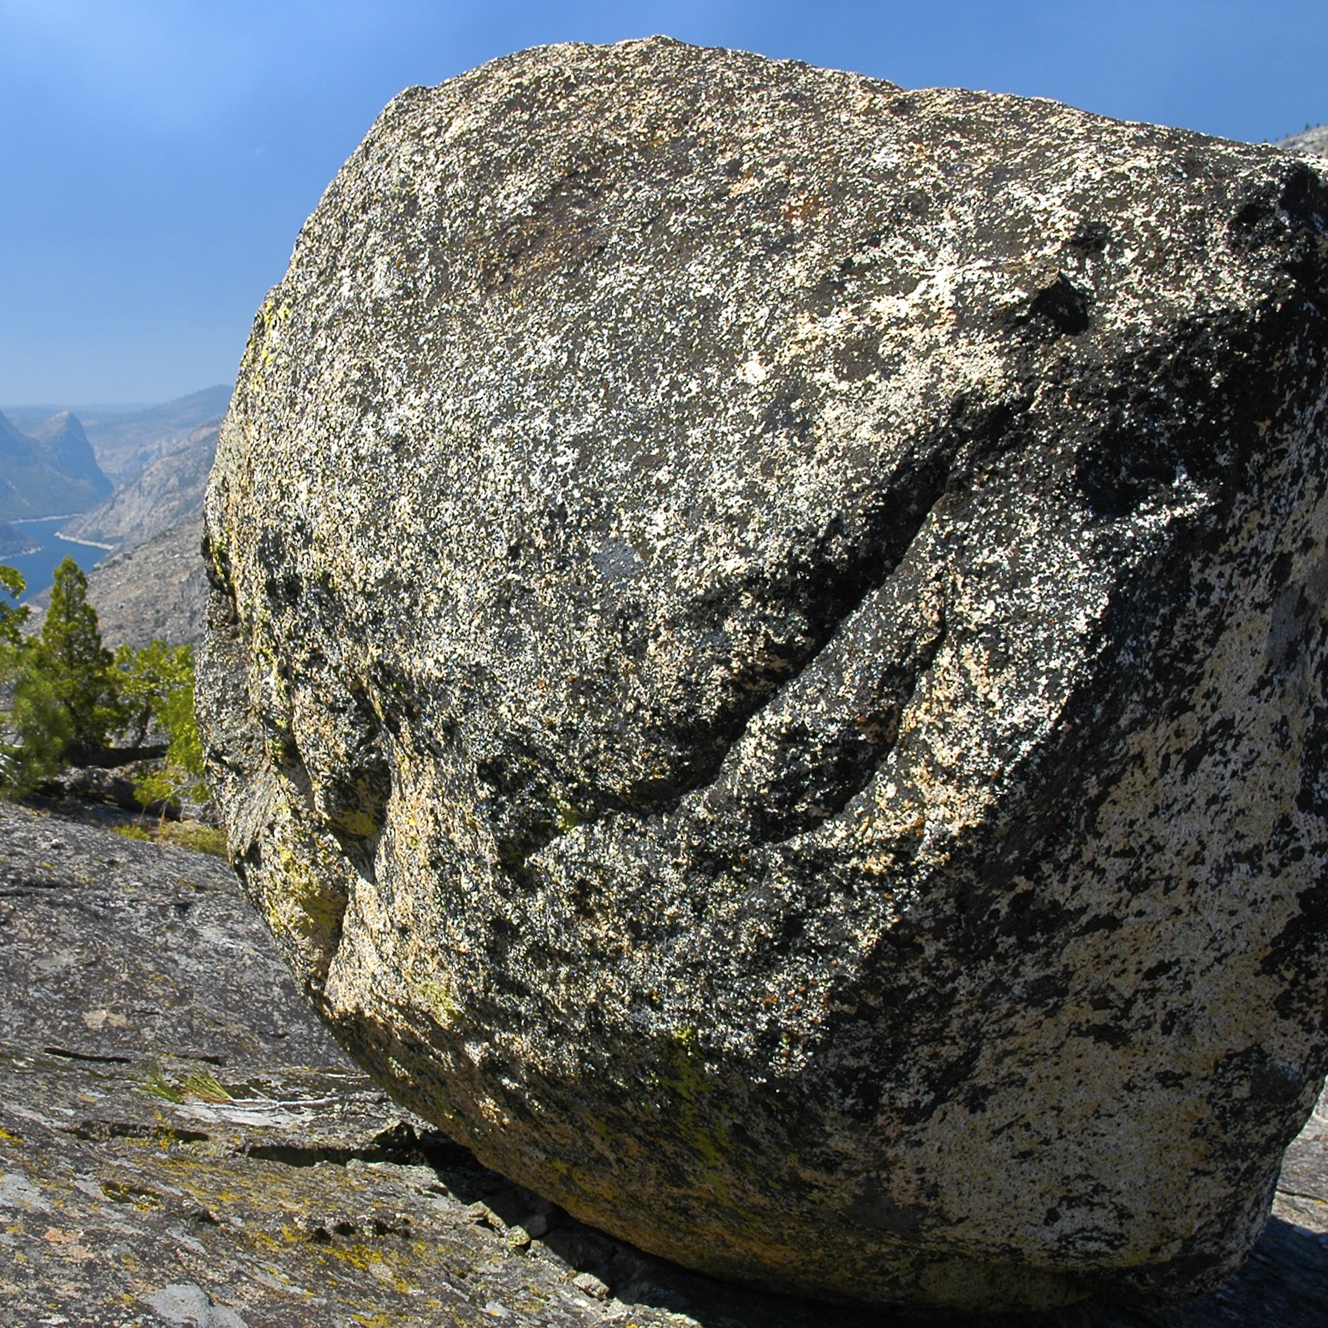 A glacial erratic with the Hetch-Hetchy Reservoir in the background.